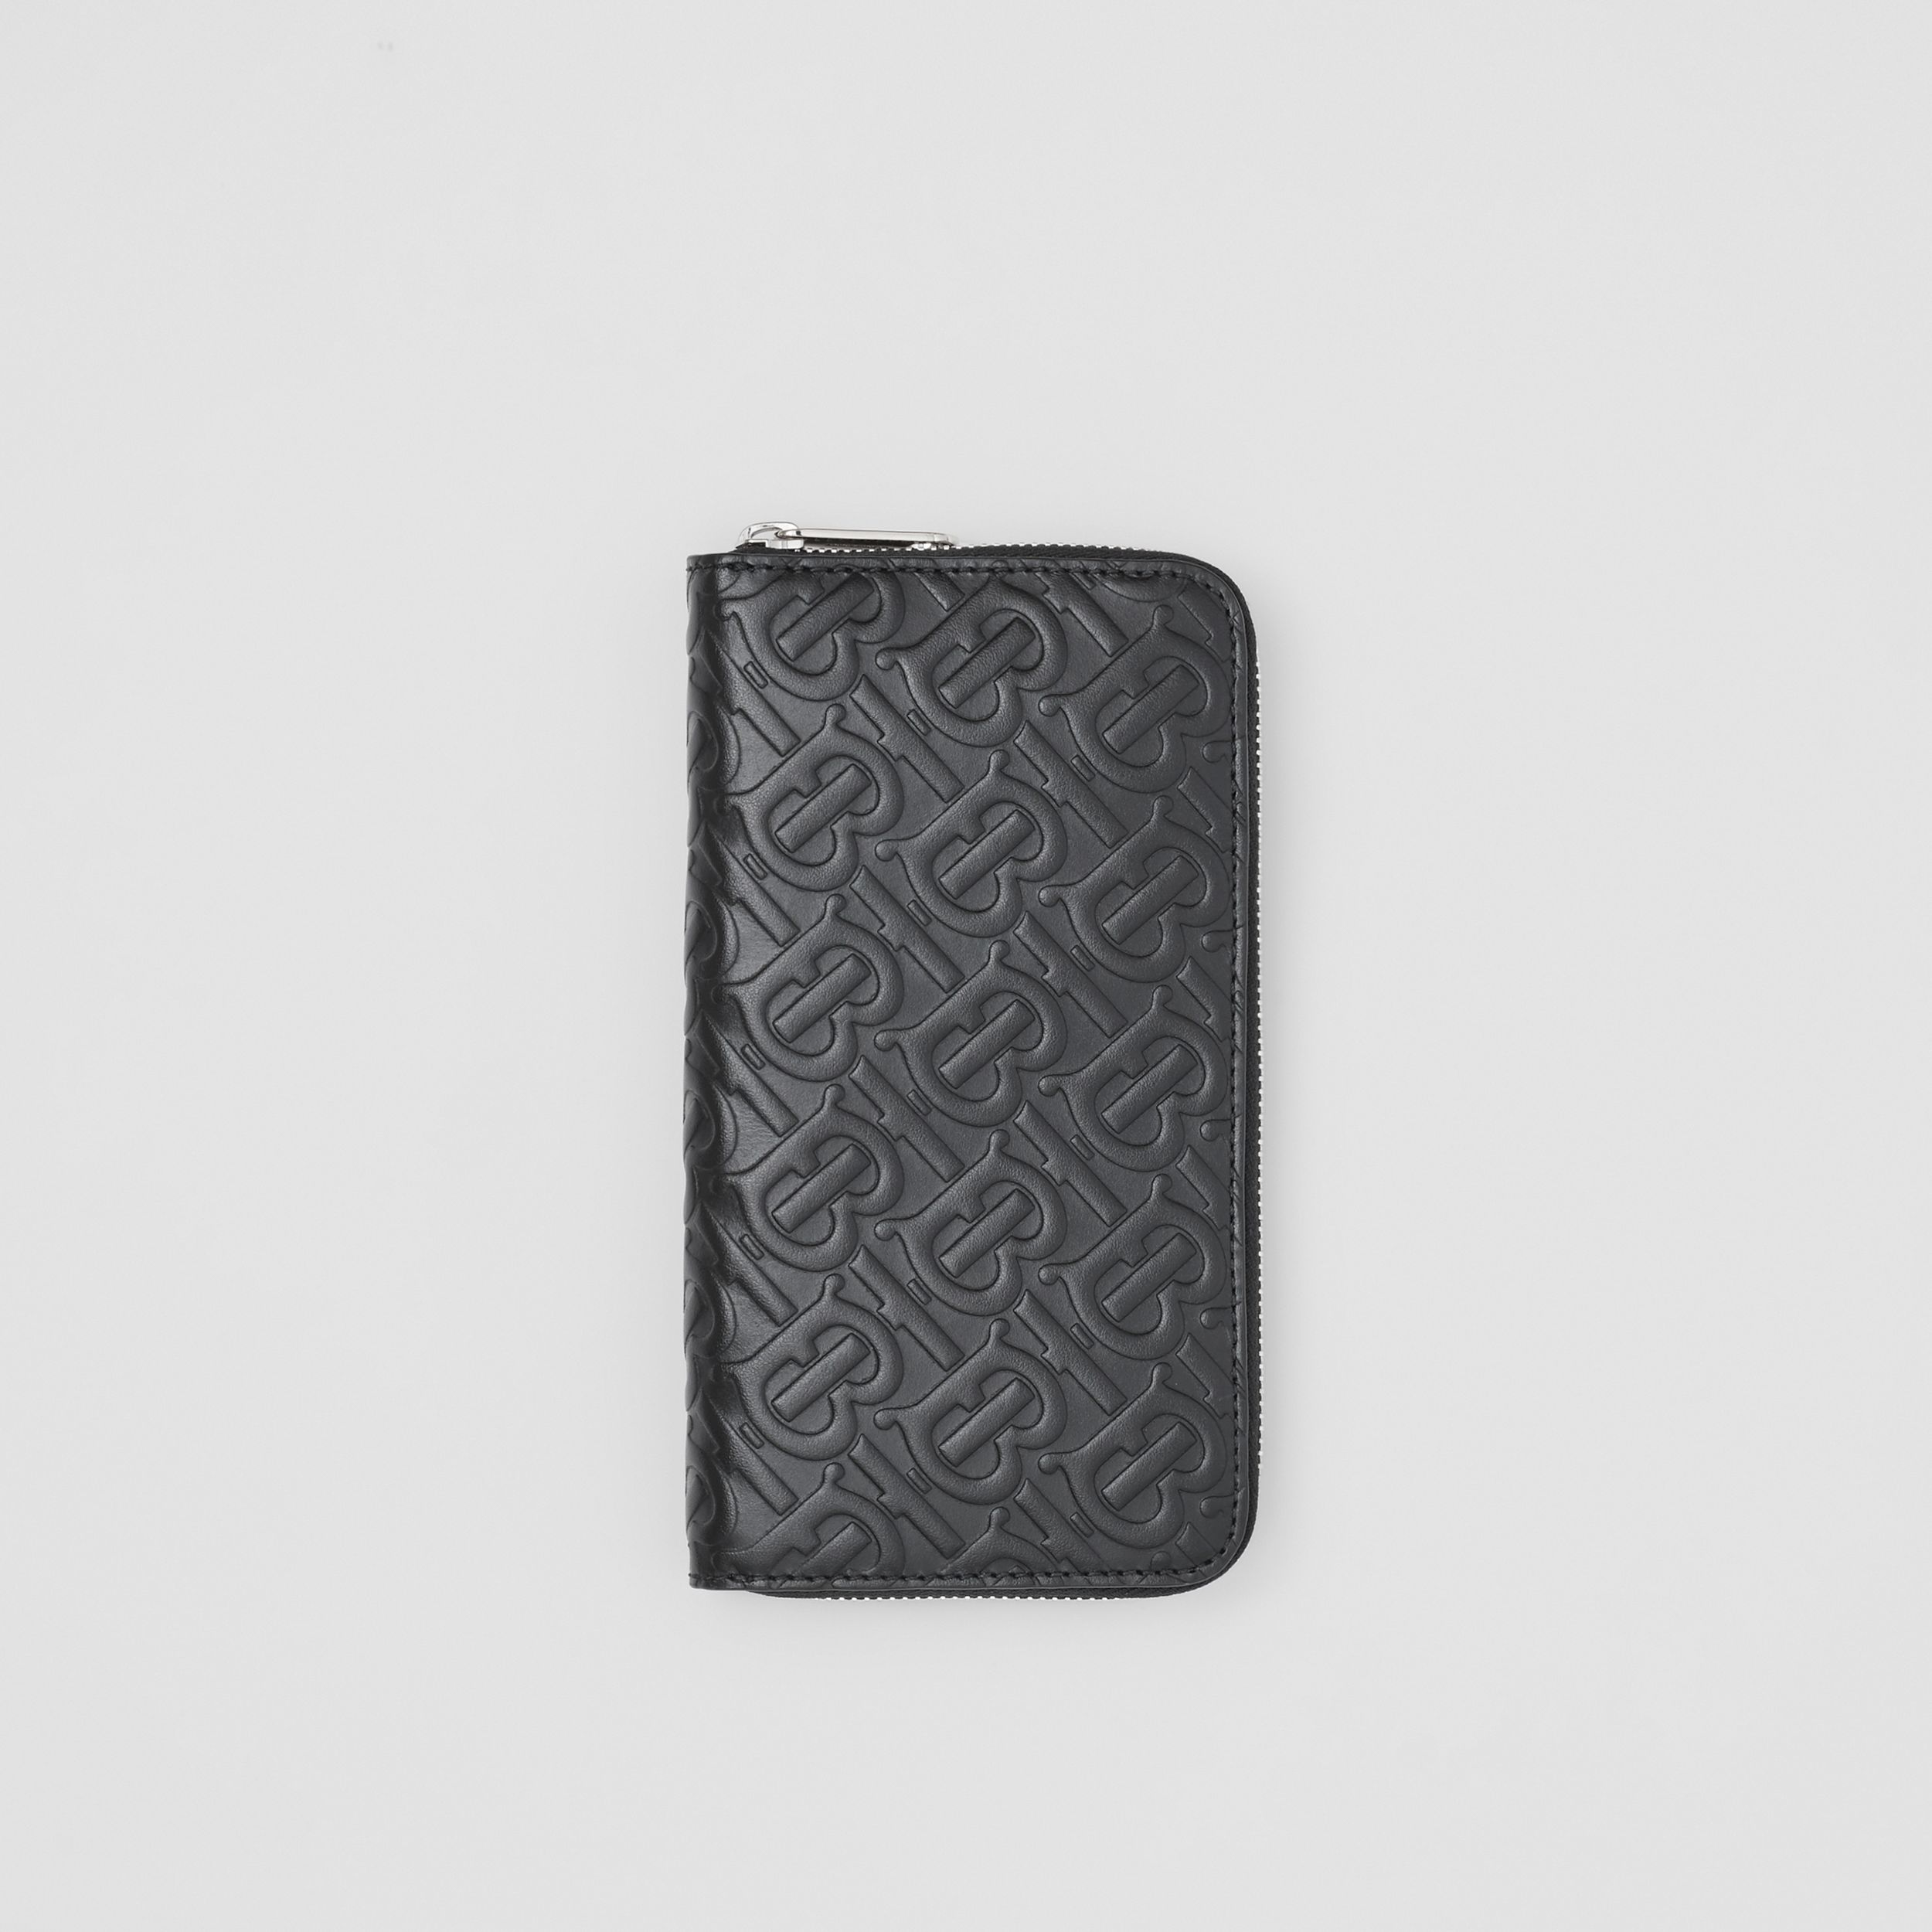 Monogram Leather Ziparound Wallet in Black - Men | Burberry Hong Kong S.A.R. - 1